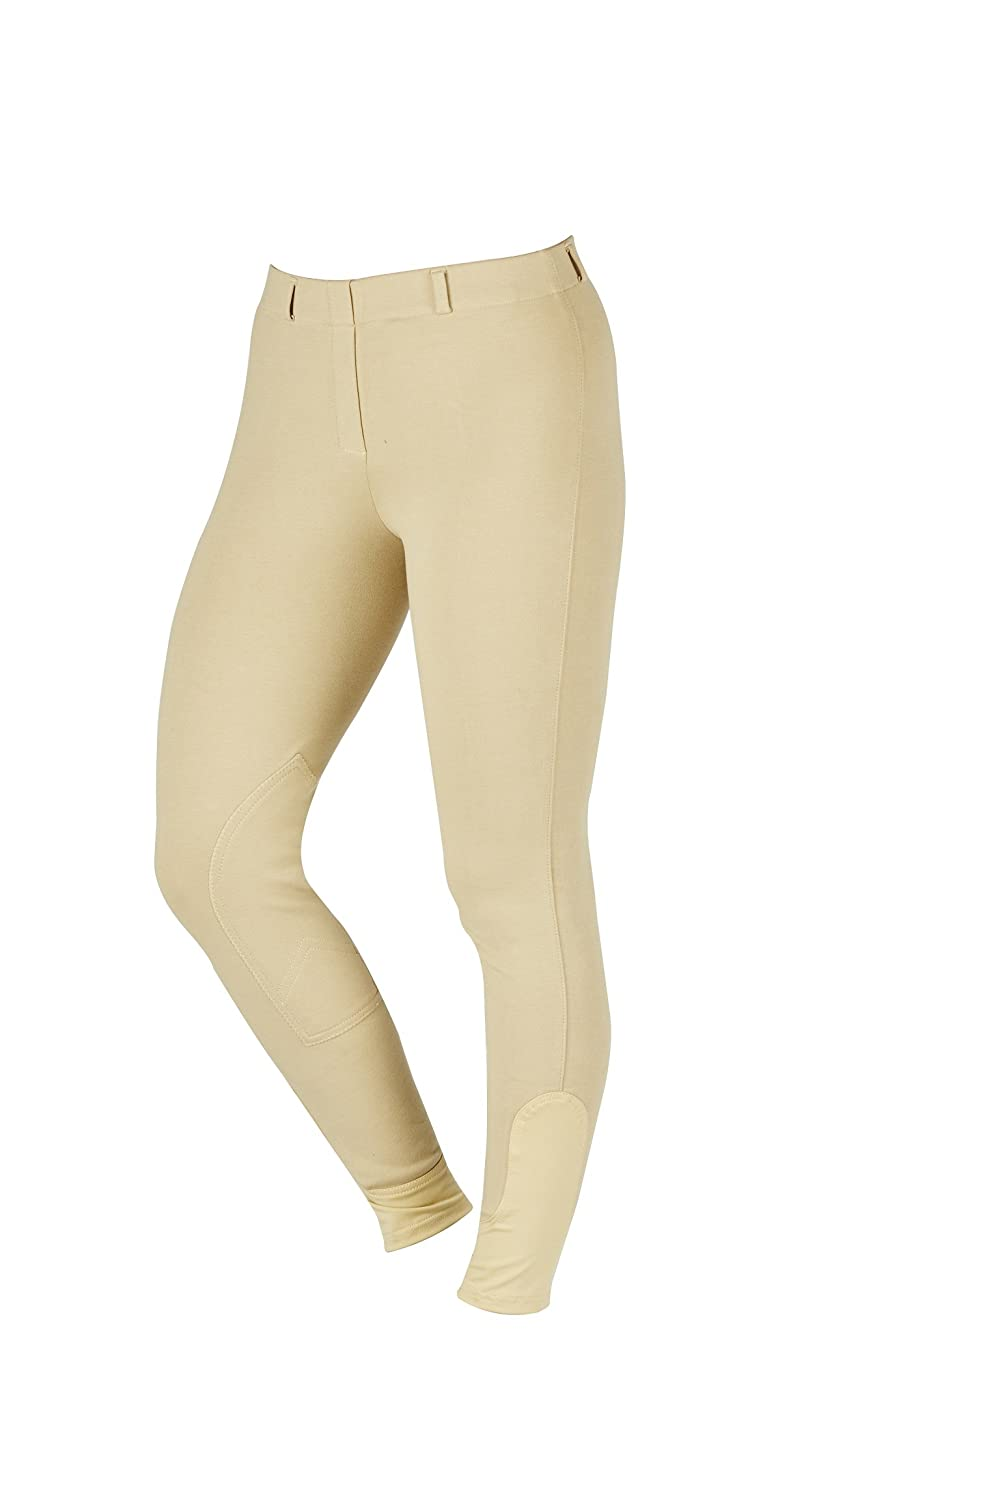 Beige 34 Beige 34 Saxon Knee Patch Pull-On Breeches for Women